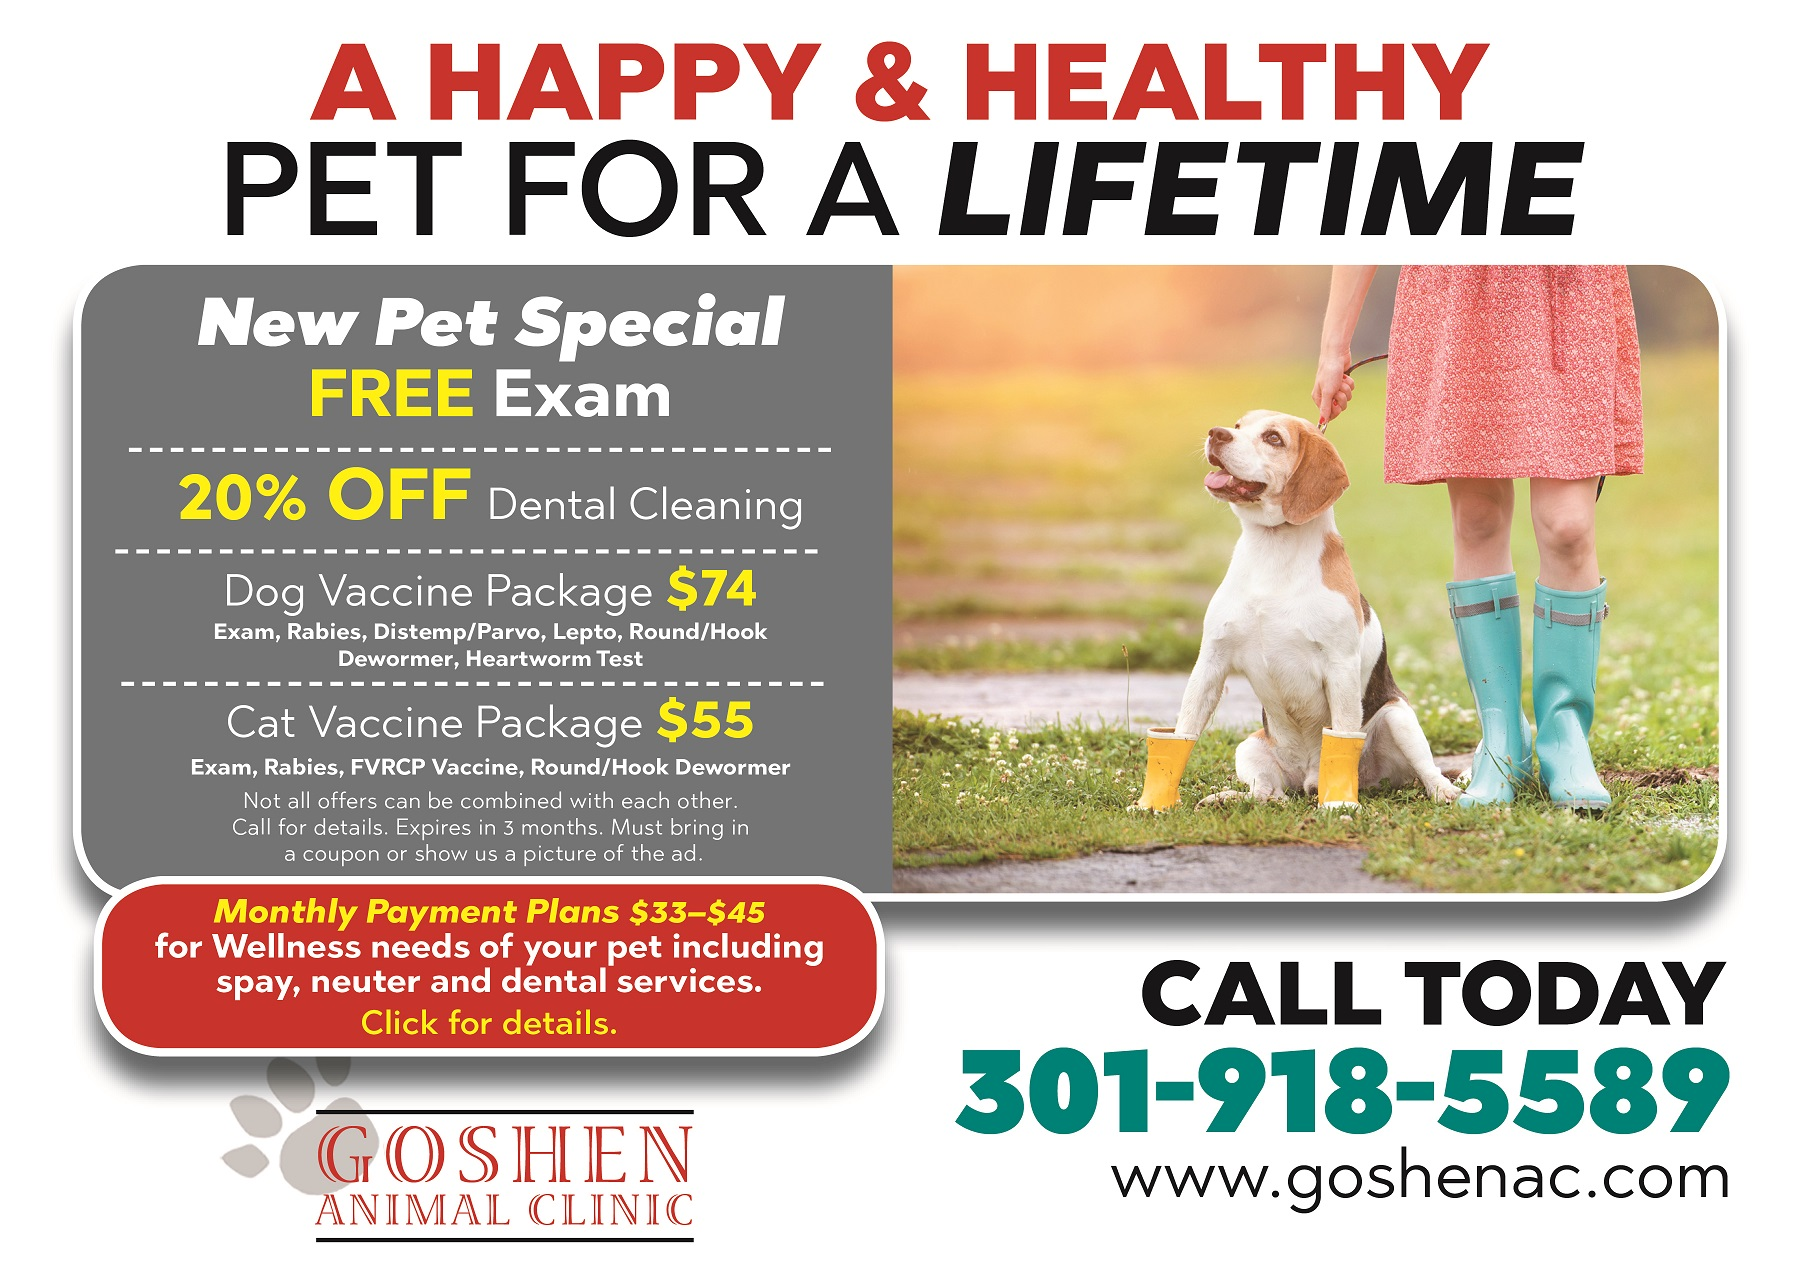 Goshen Animal Clinic, promotion